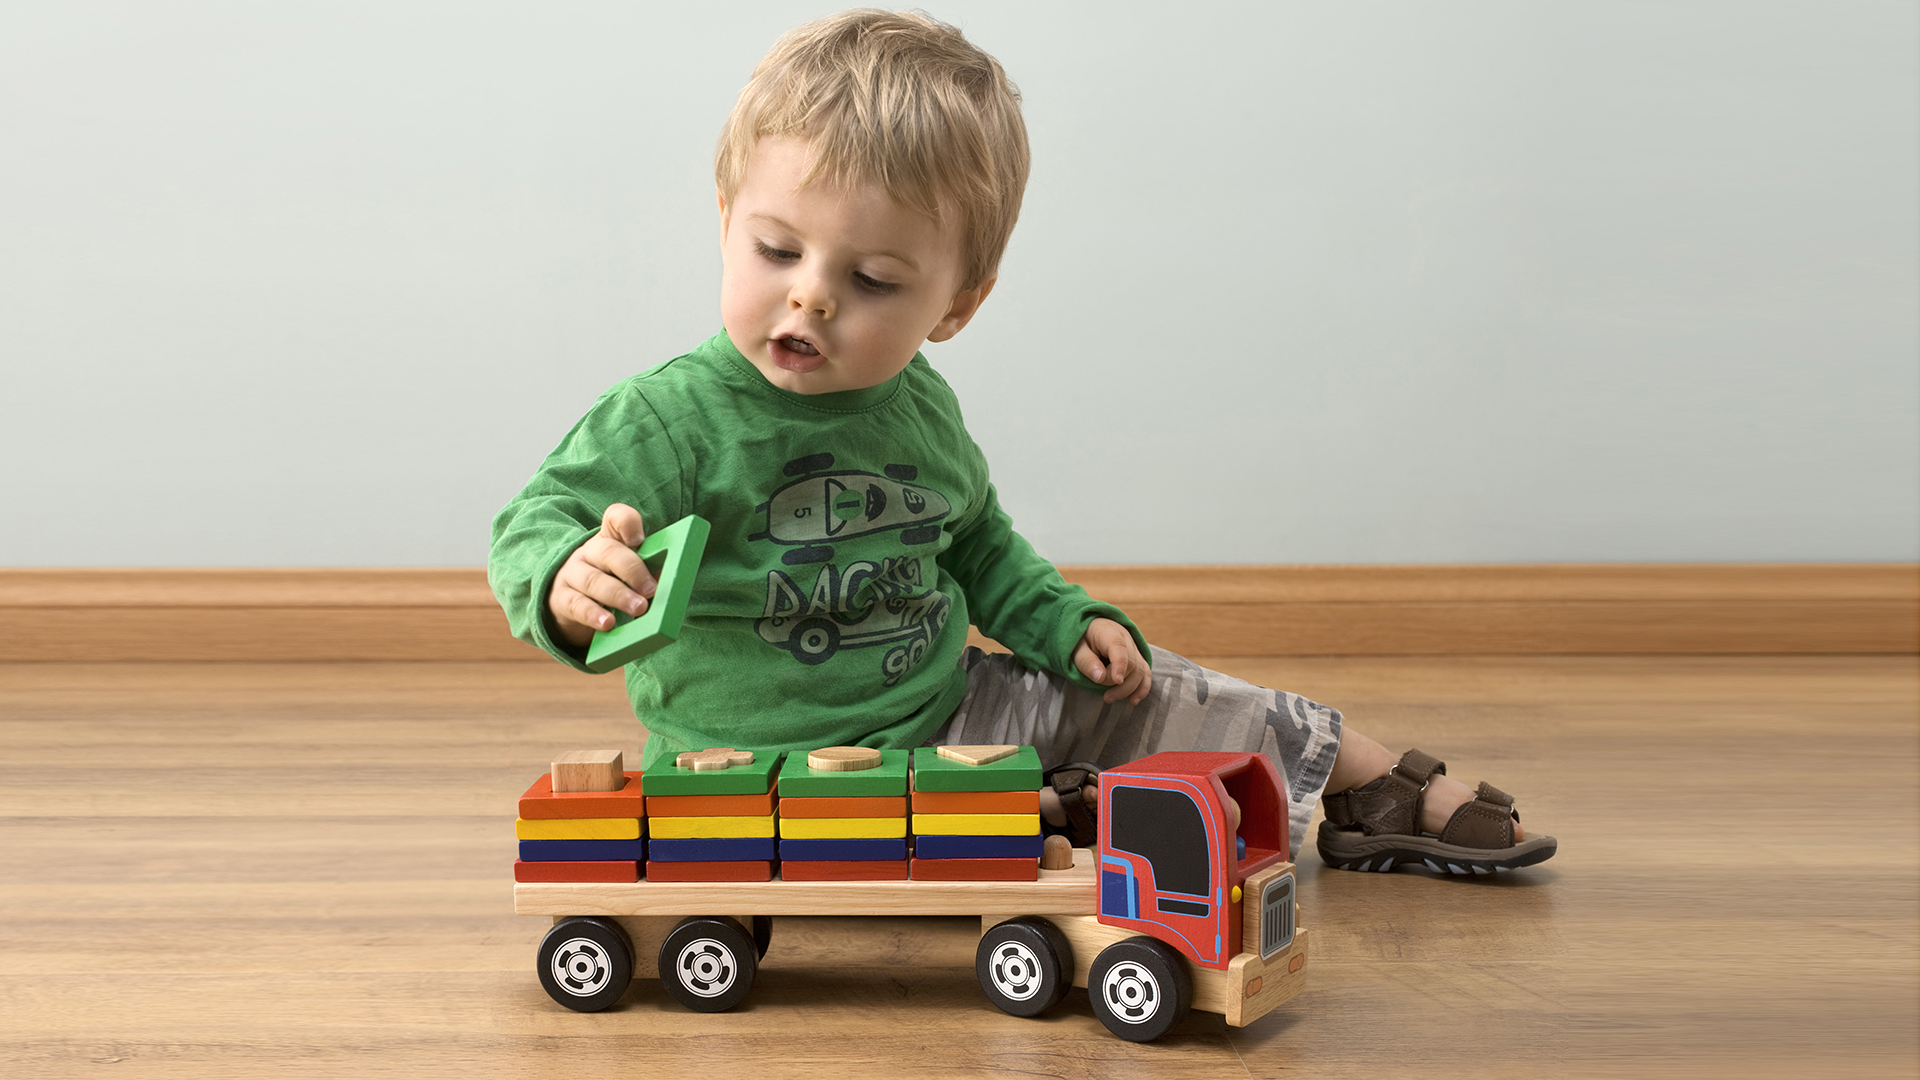 A child asks for an expensive toy - what to do 23